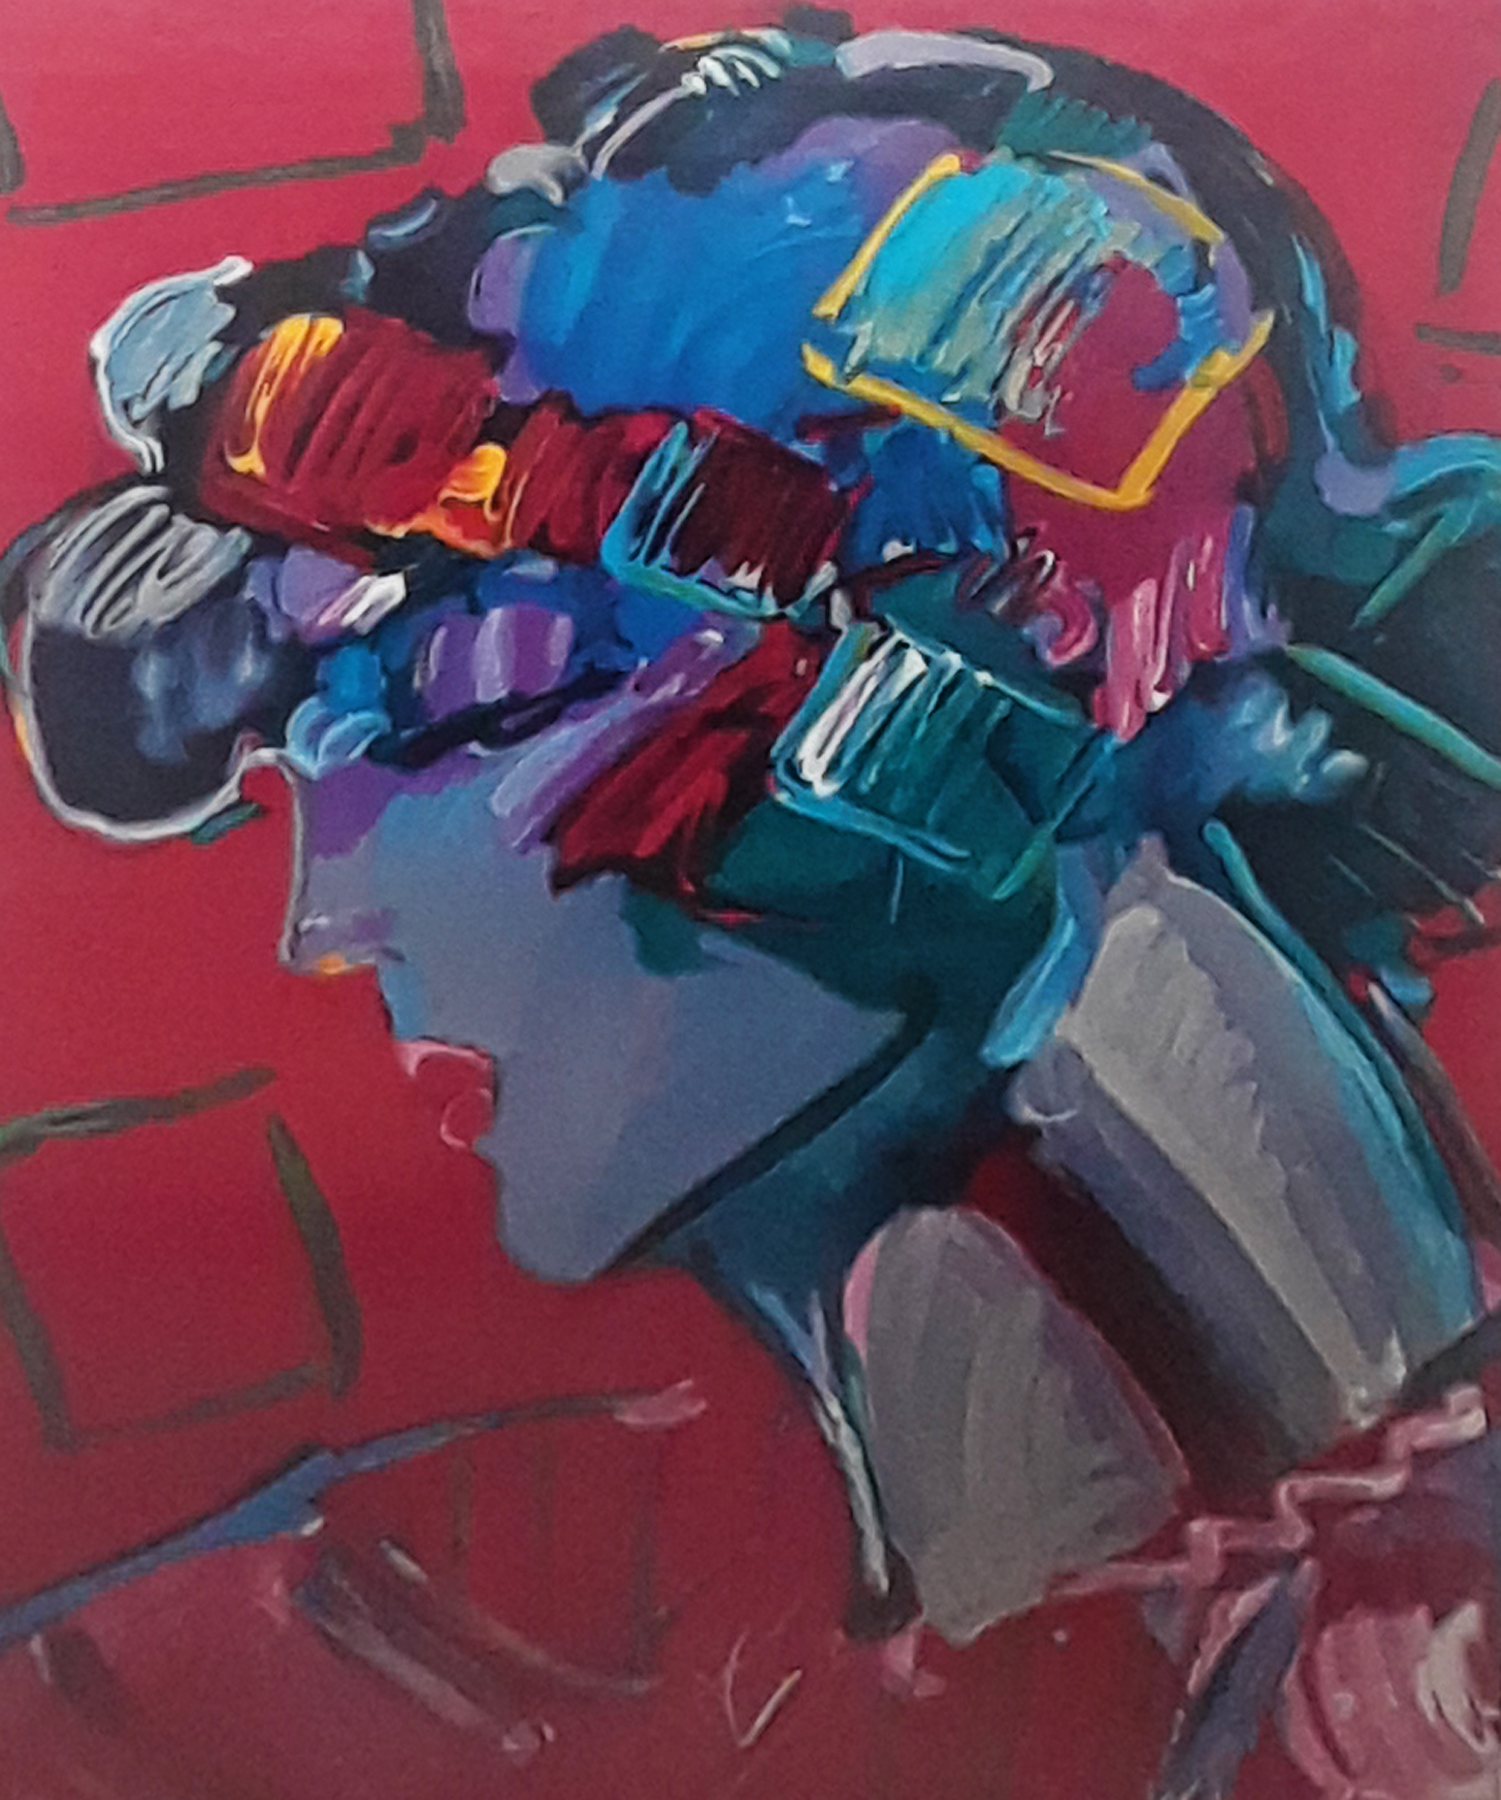 Crimson Lady 1987 by Peter Max